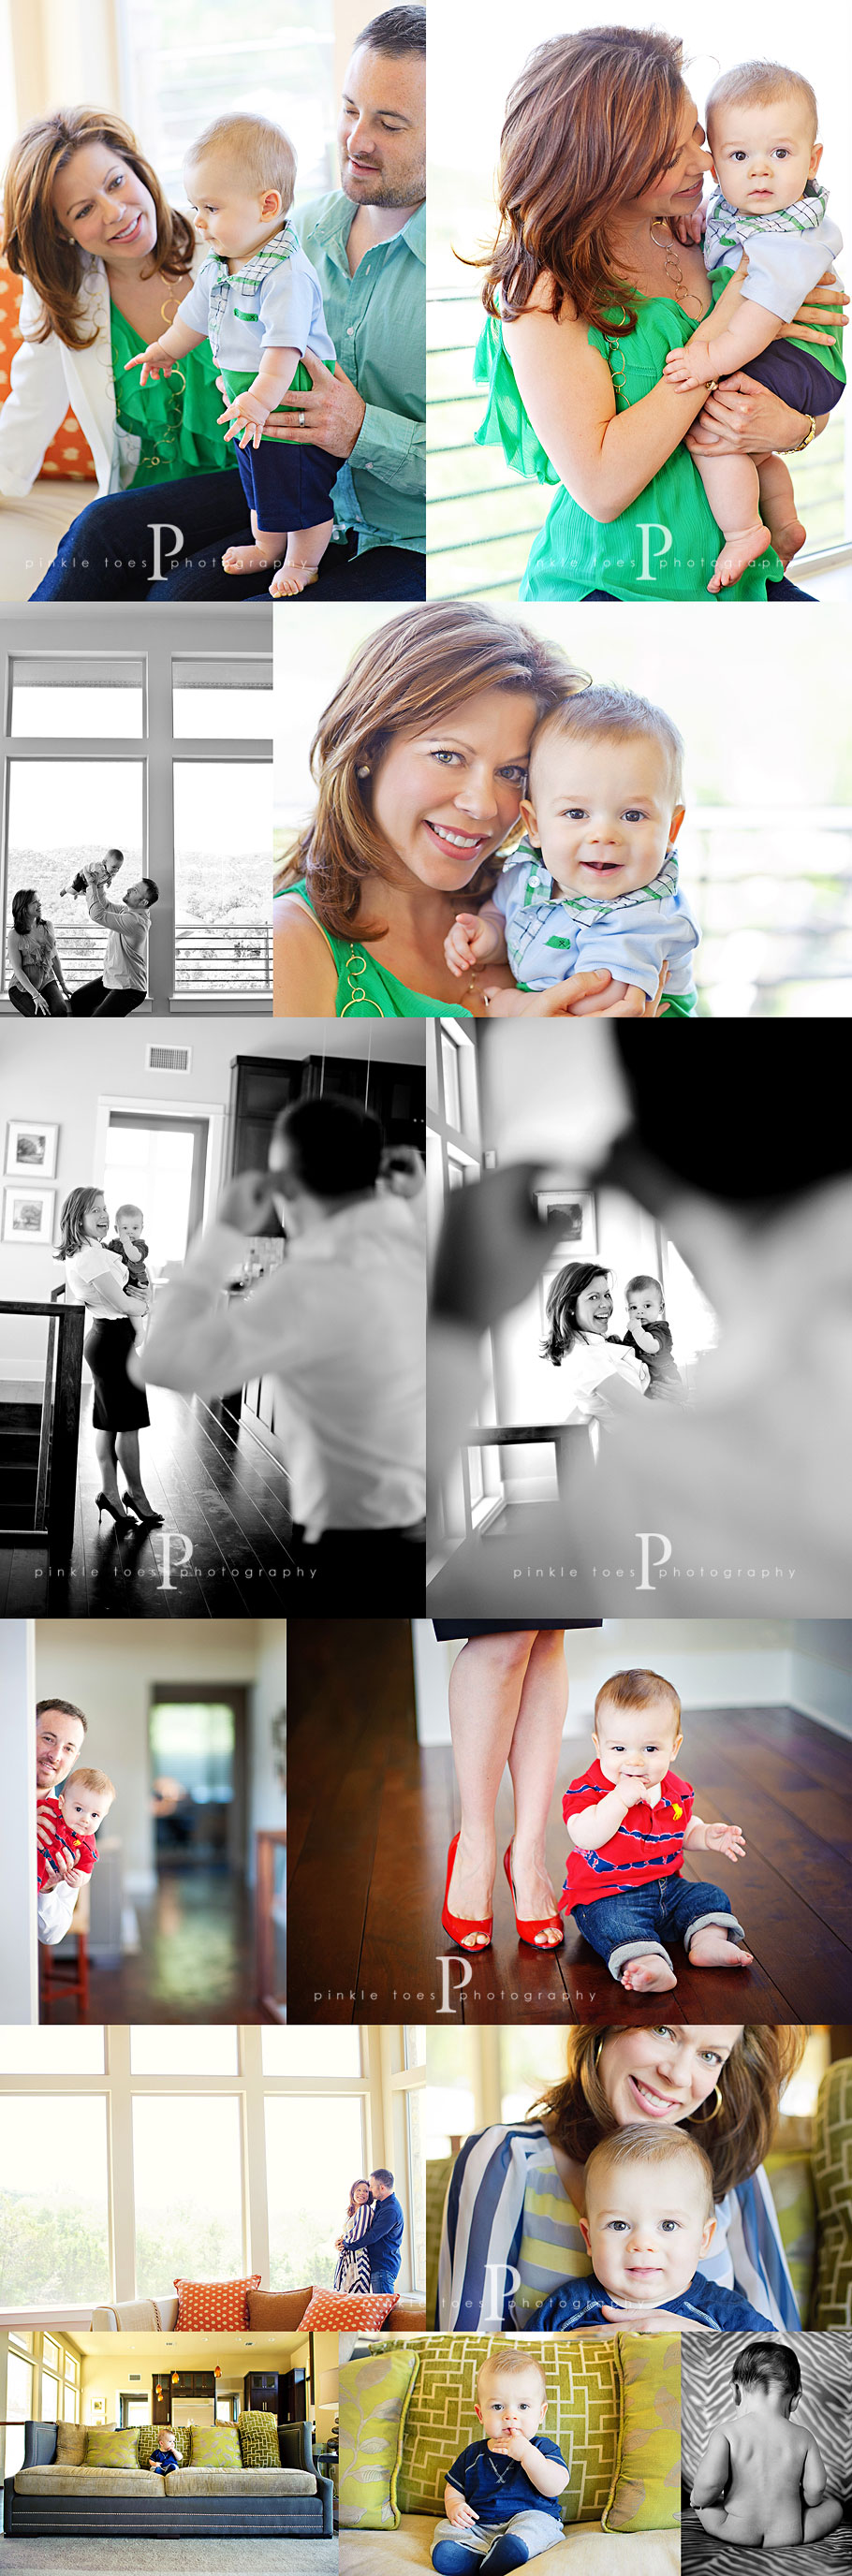 d_family_austin_baby_lifestyle_photographer.jpg